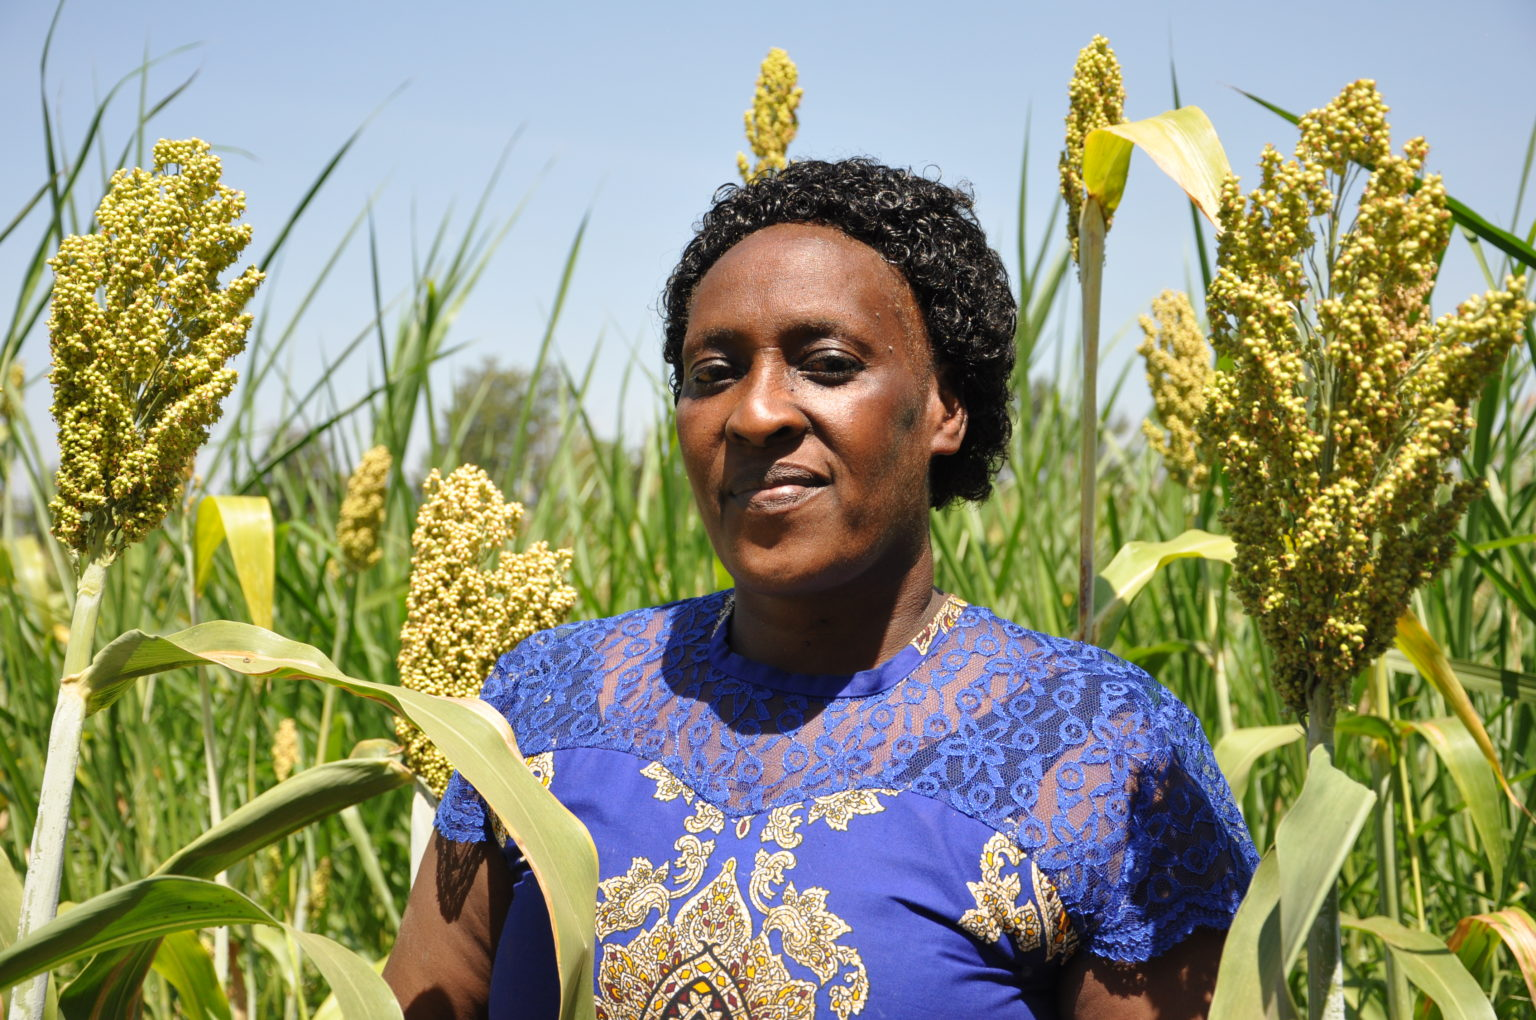 Susan is a sorghum farmer and buying agent for Shalem. This picture was taken by Kristin Williams, Communications Manager, during a visit to Shalem in July 2019.